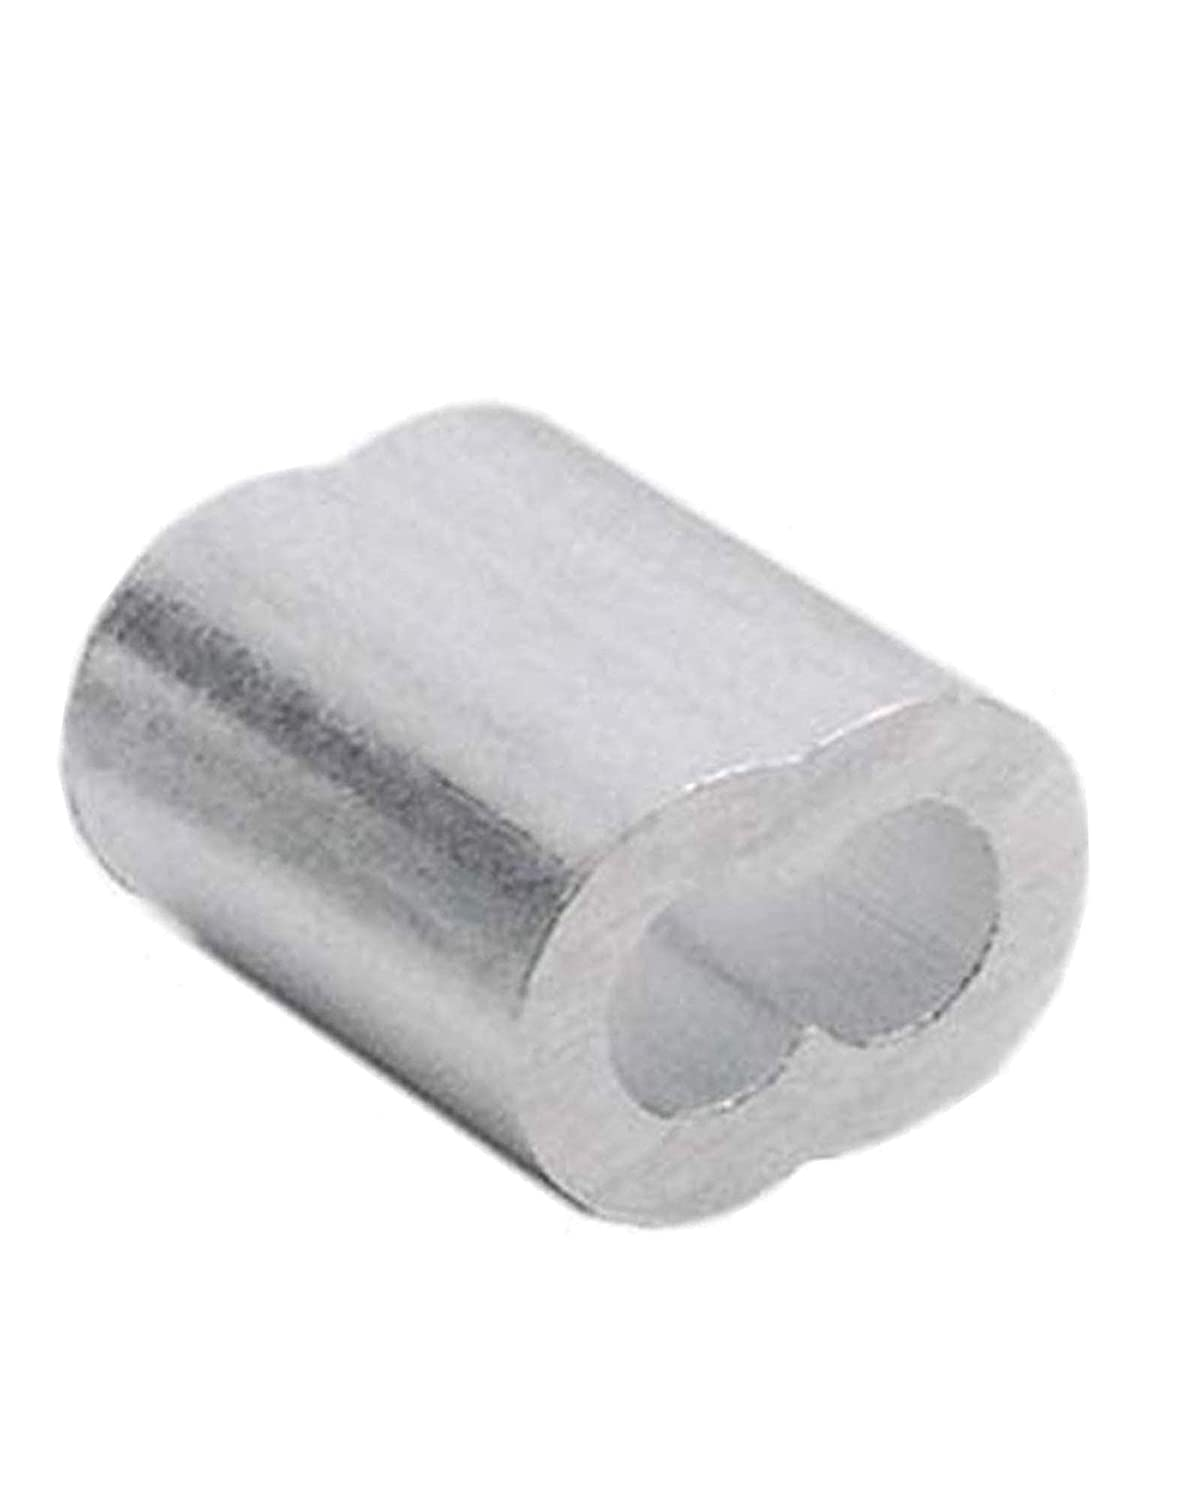 3//16/″ Aluminum Cable Crimps 50 Cable Sleeves Cable Crimp Wire Crimps Aluminum Crimping Loop Sleeve Wire Rope Crimp Sleeve Aluminum Wire Rope Crimp Loop Sleeve